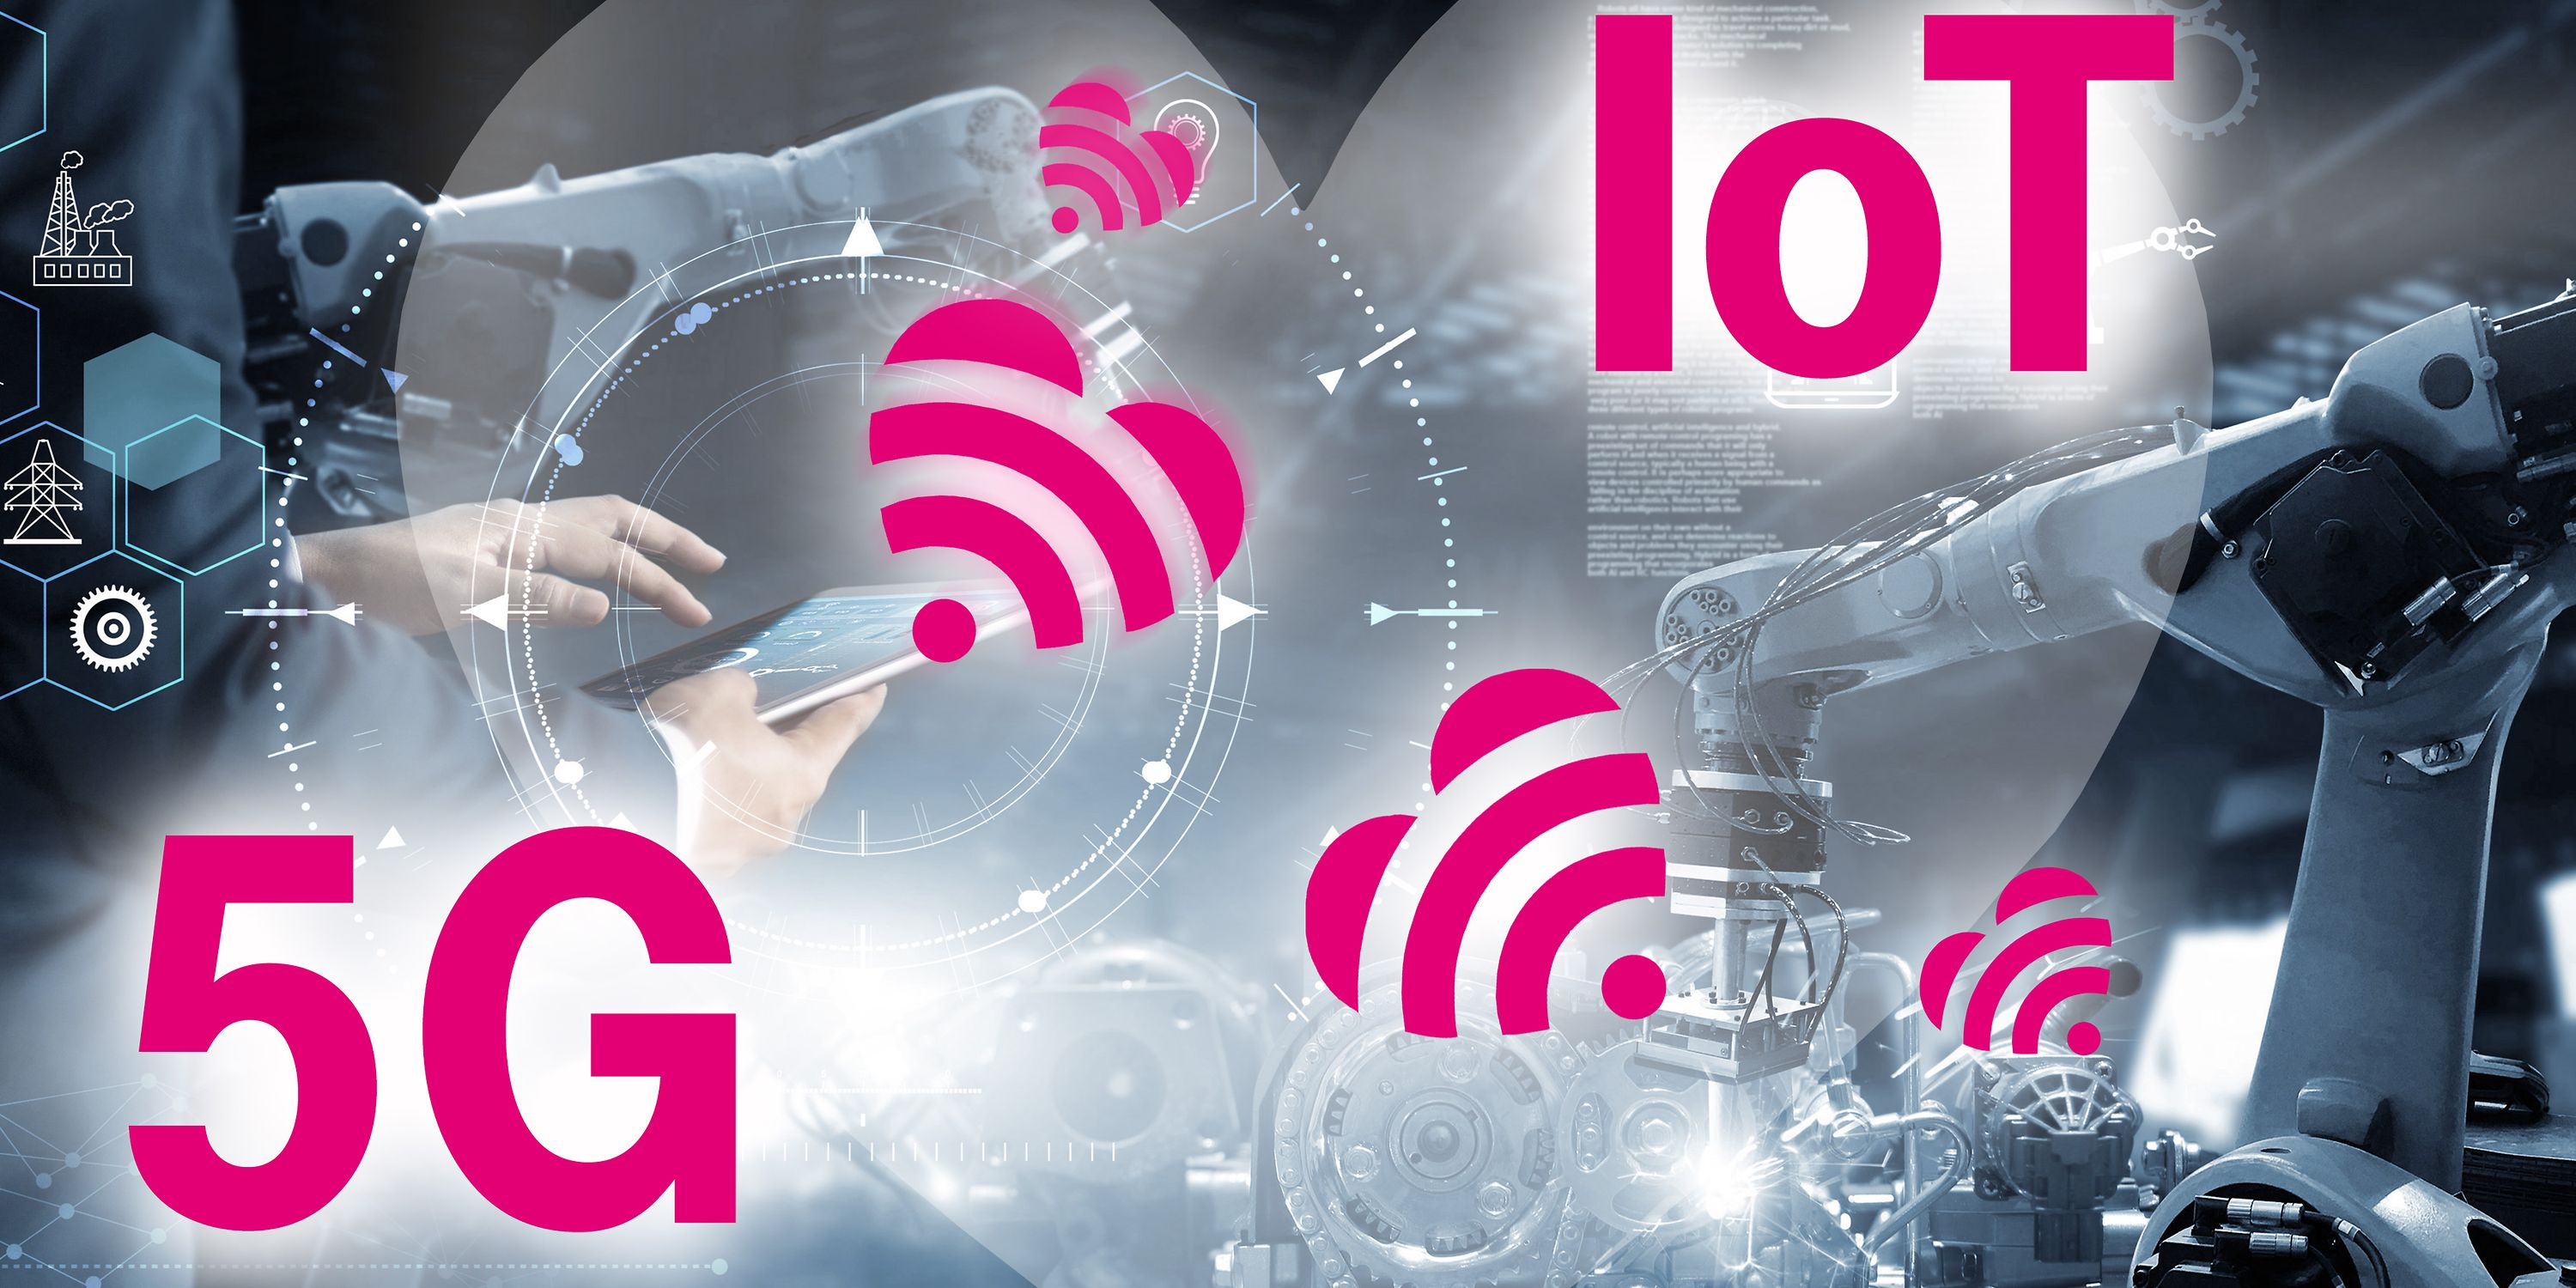 Love story digital: IoT and 5G connects devices, buildings, machines, vehicles, and goods.